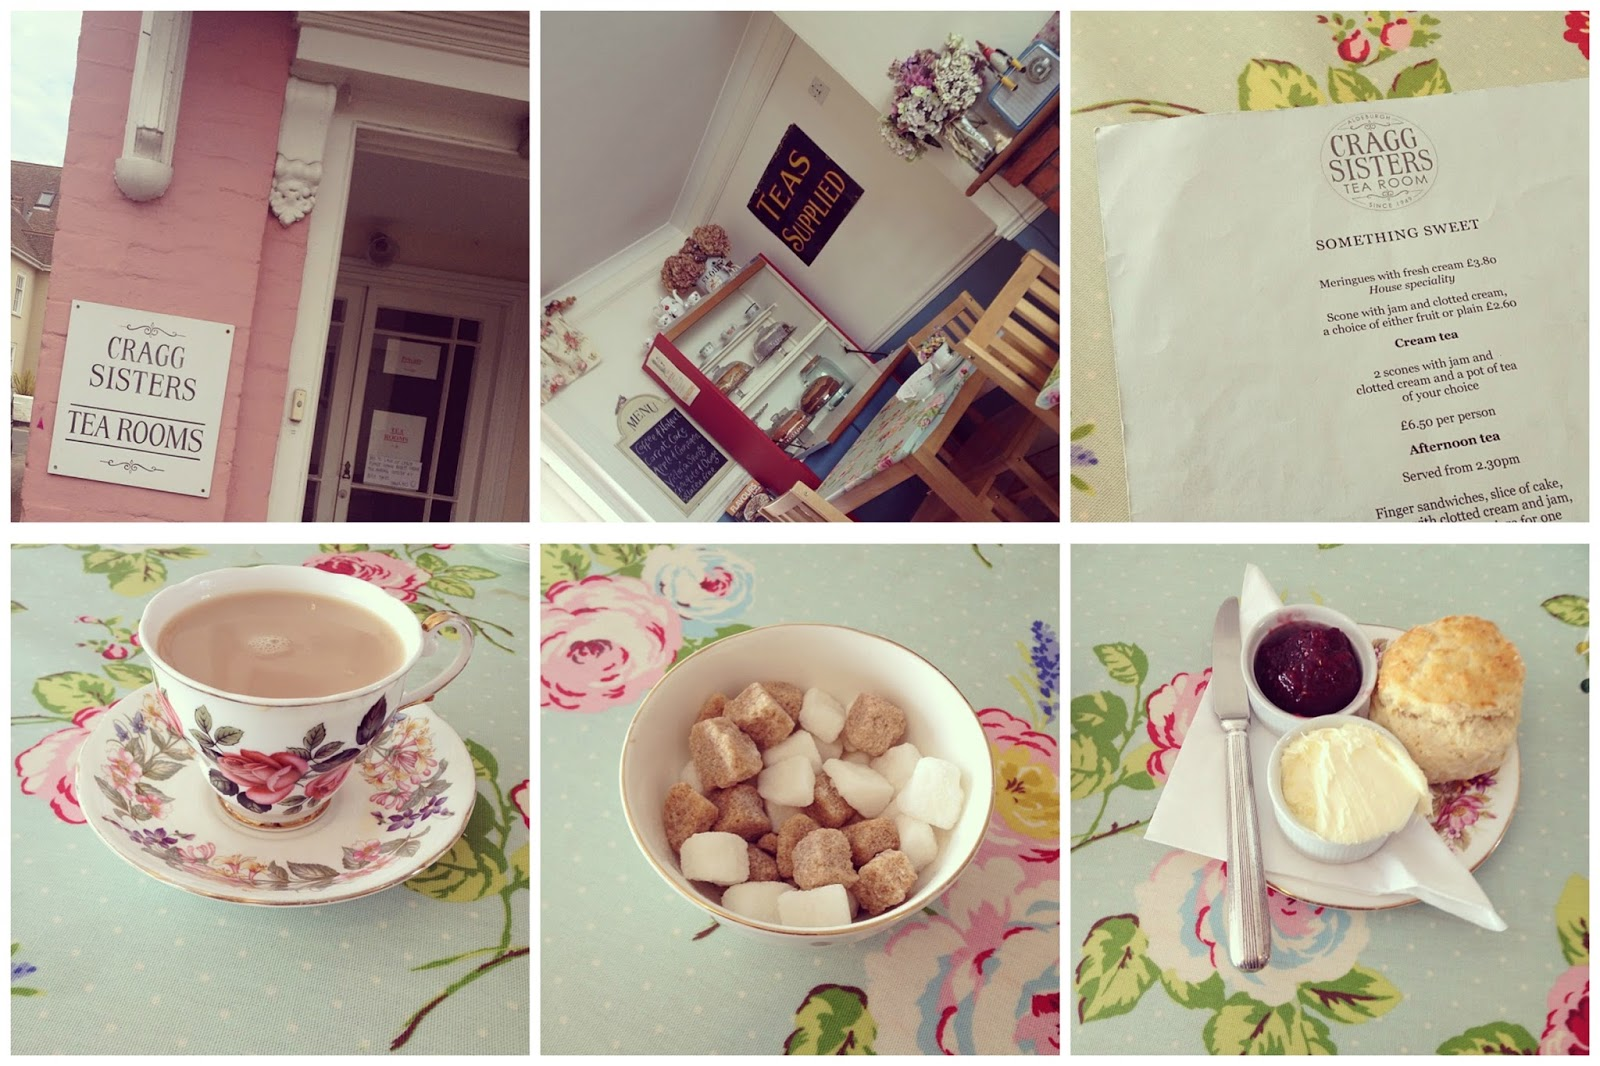 Cragg Sisters Tearoom Review